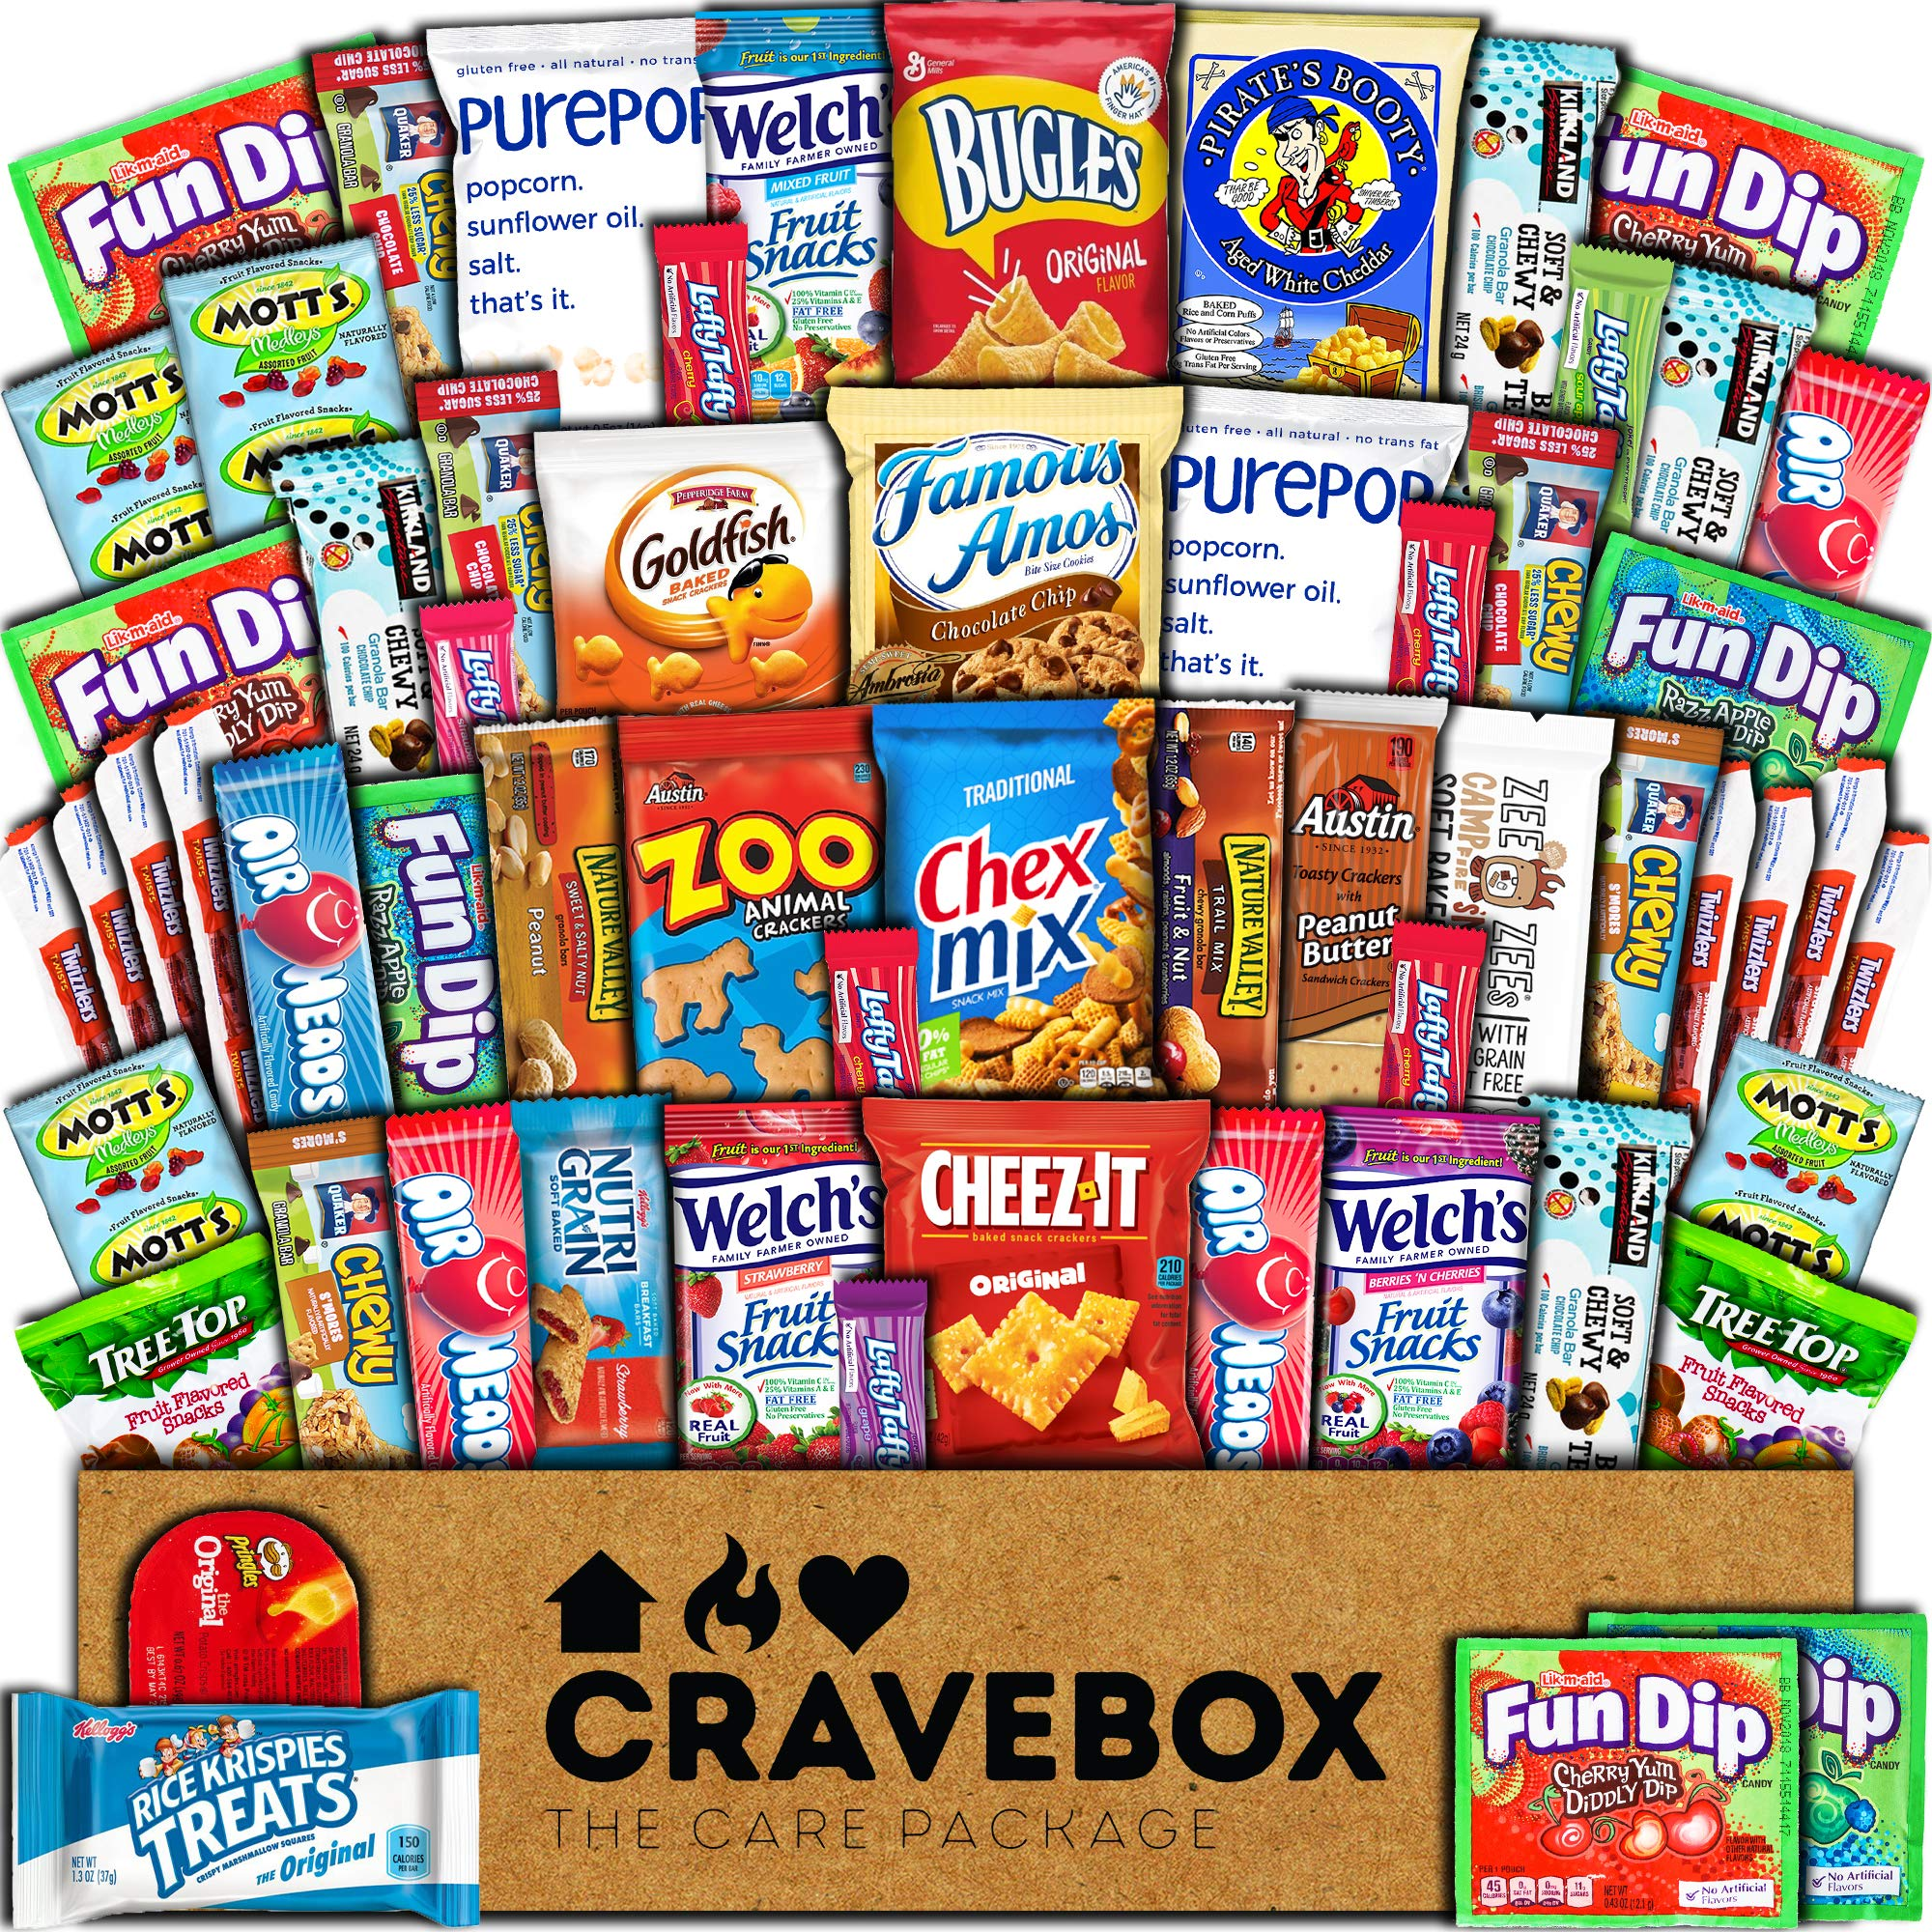 CraveBox Care Package (60 Count) Snacks Cookies Bars Chips Candy Ultimate Variety Gift Box Pack Assortment Basket Bundle Mixed Bulk Sampler Treats College Students Office Fall Back to School Halloween by CRAVEBOX